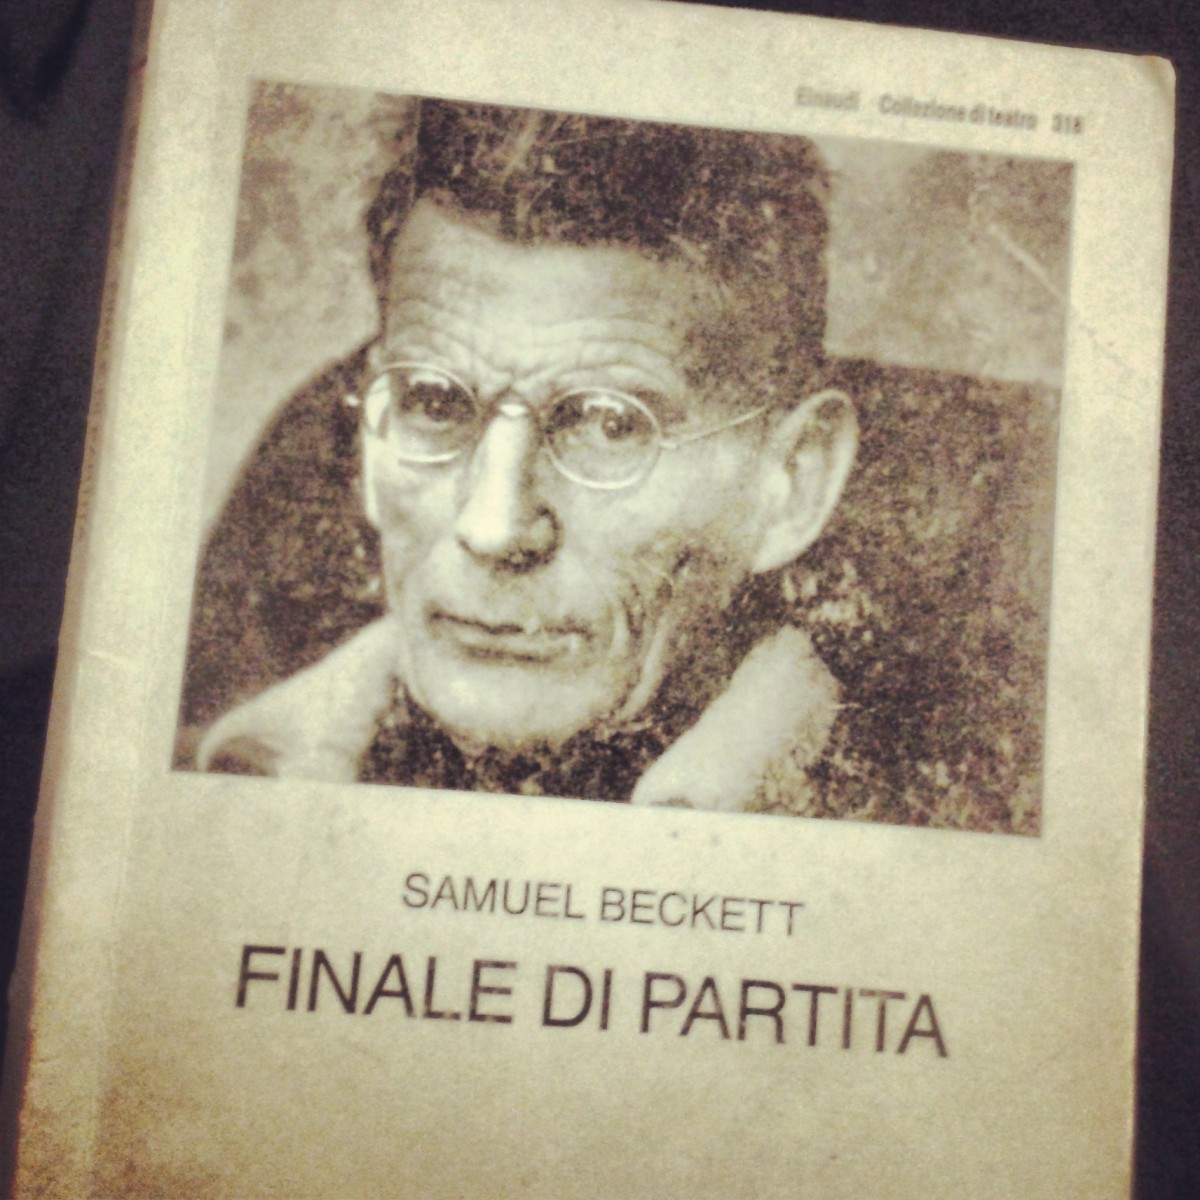 Finale di partita. Beckett I love U